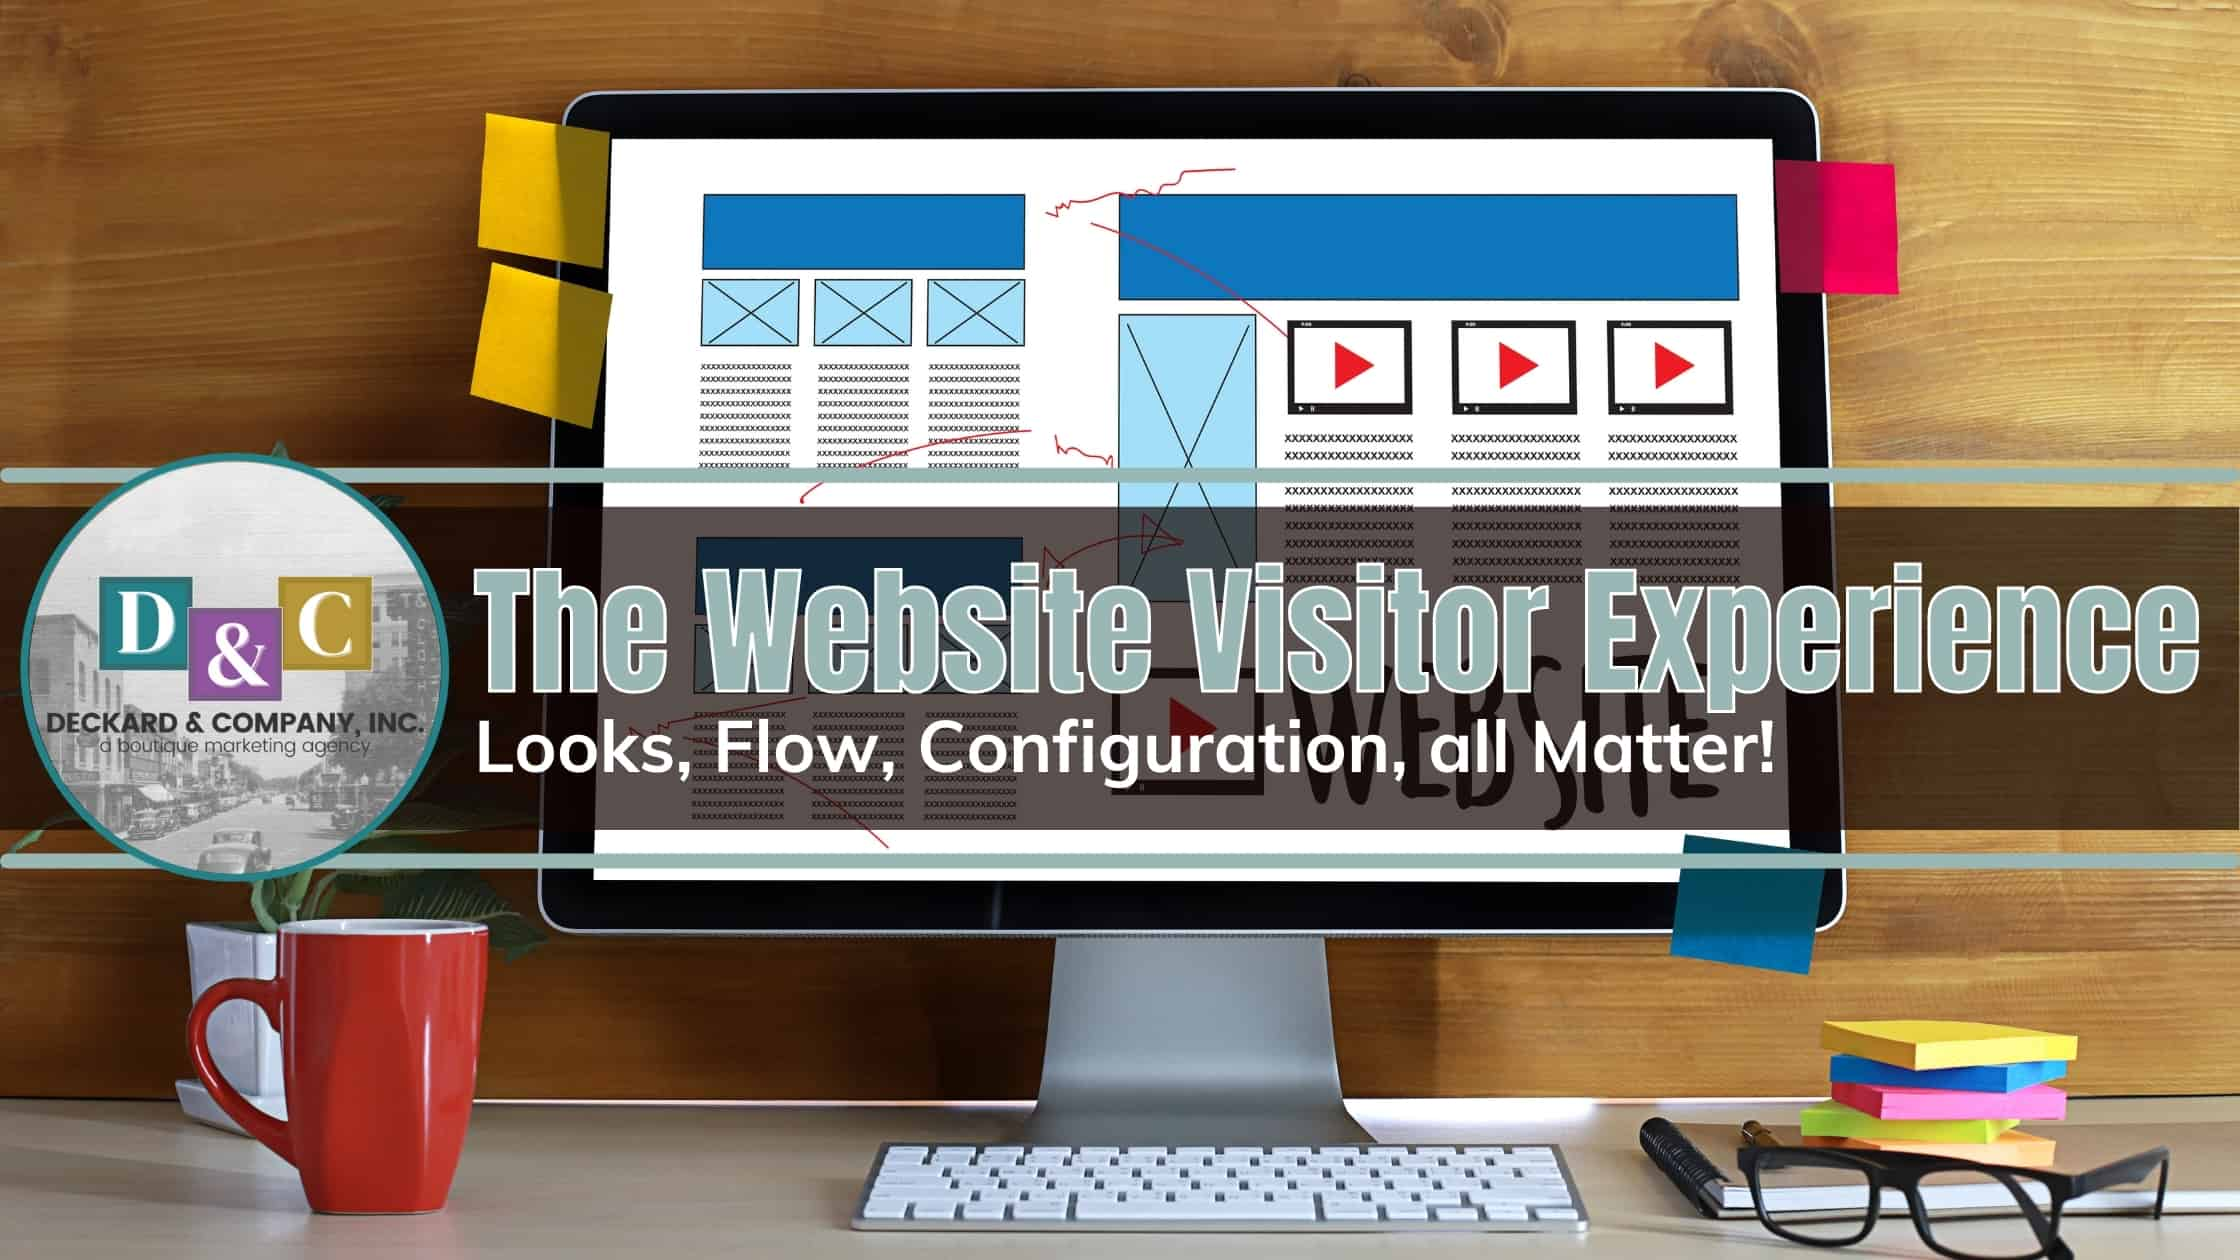 The Website Visitor Experience all Matter. WordPress website design and development by Deckard & Company, a Boutique Marketing Agency based in Bradenton, Florida